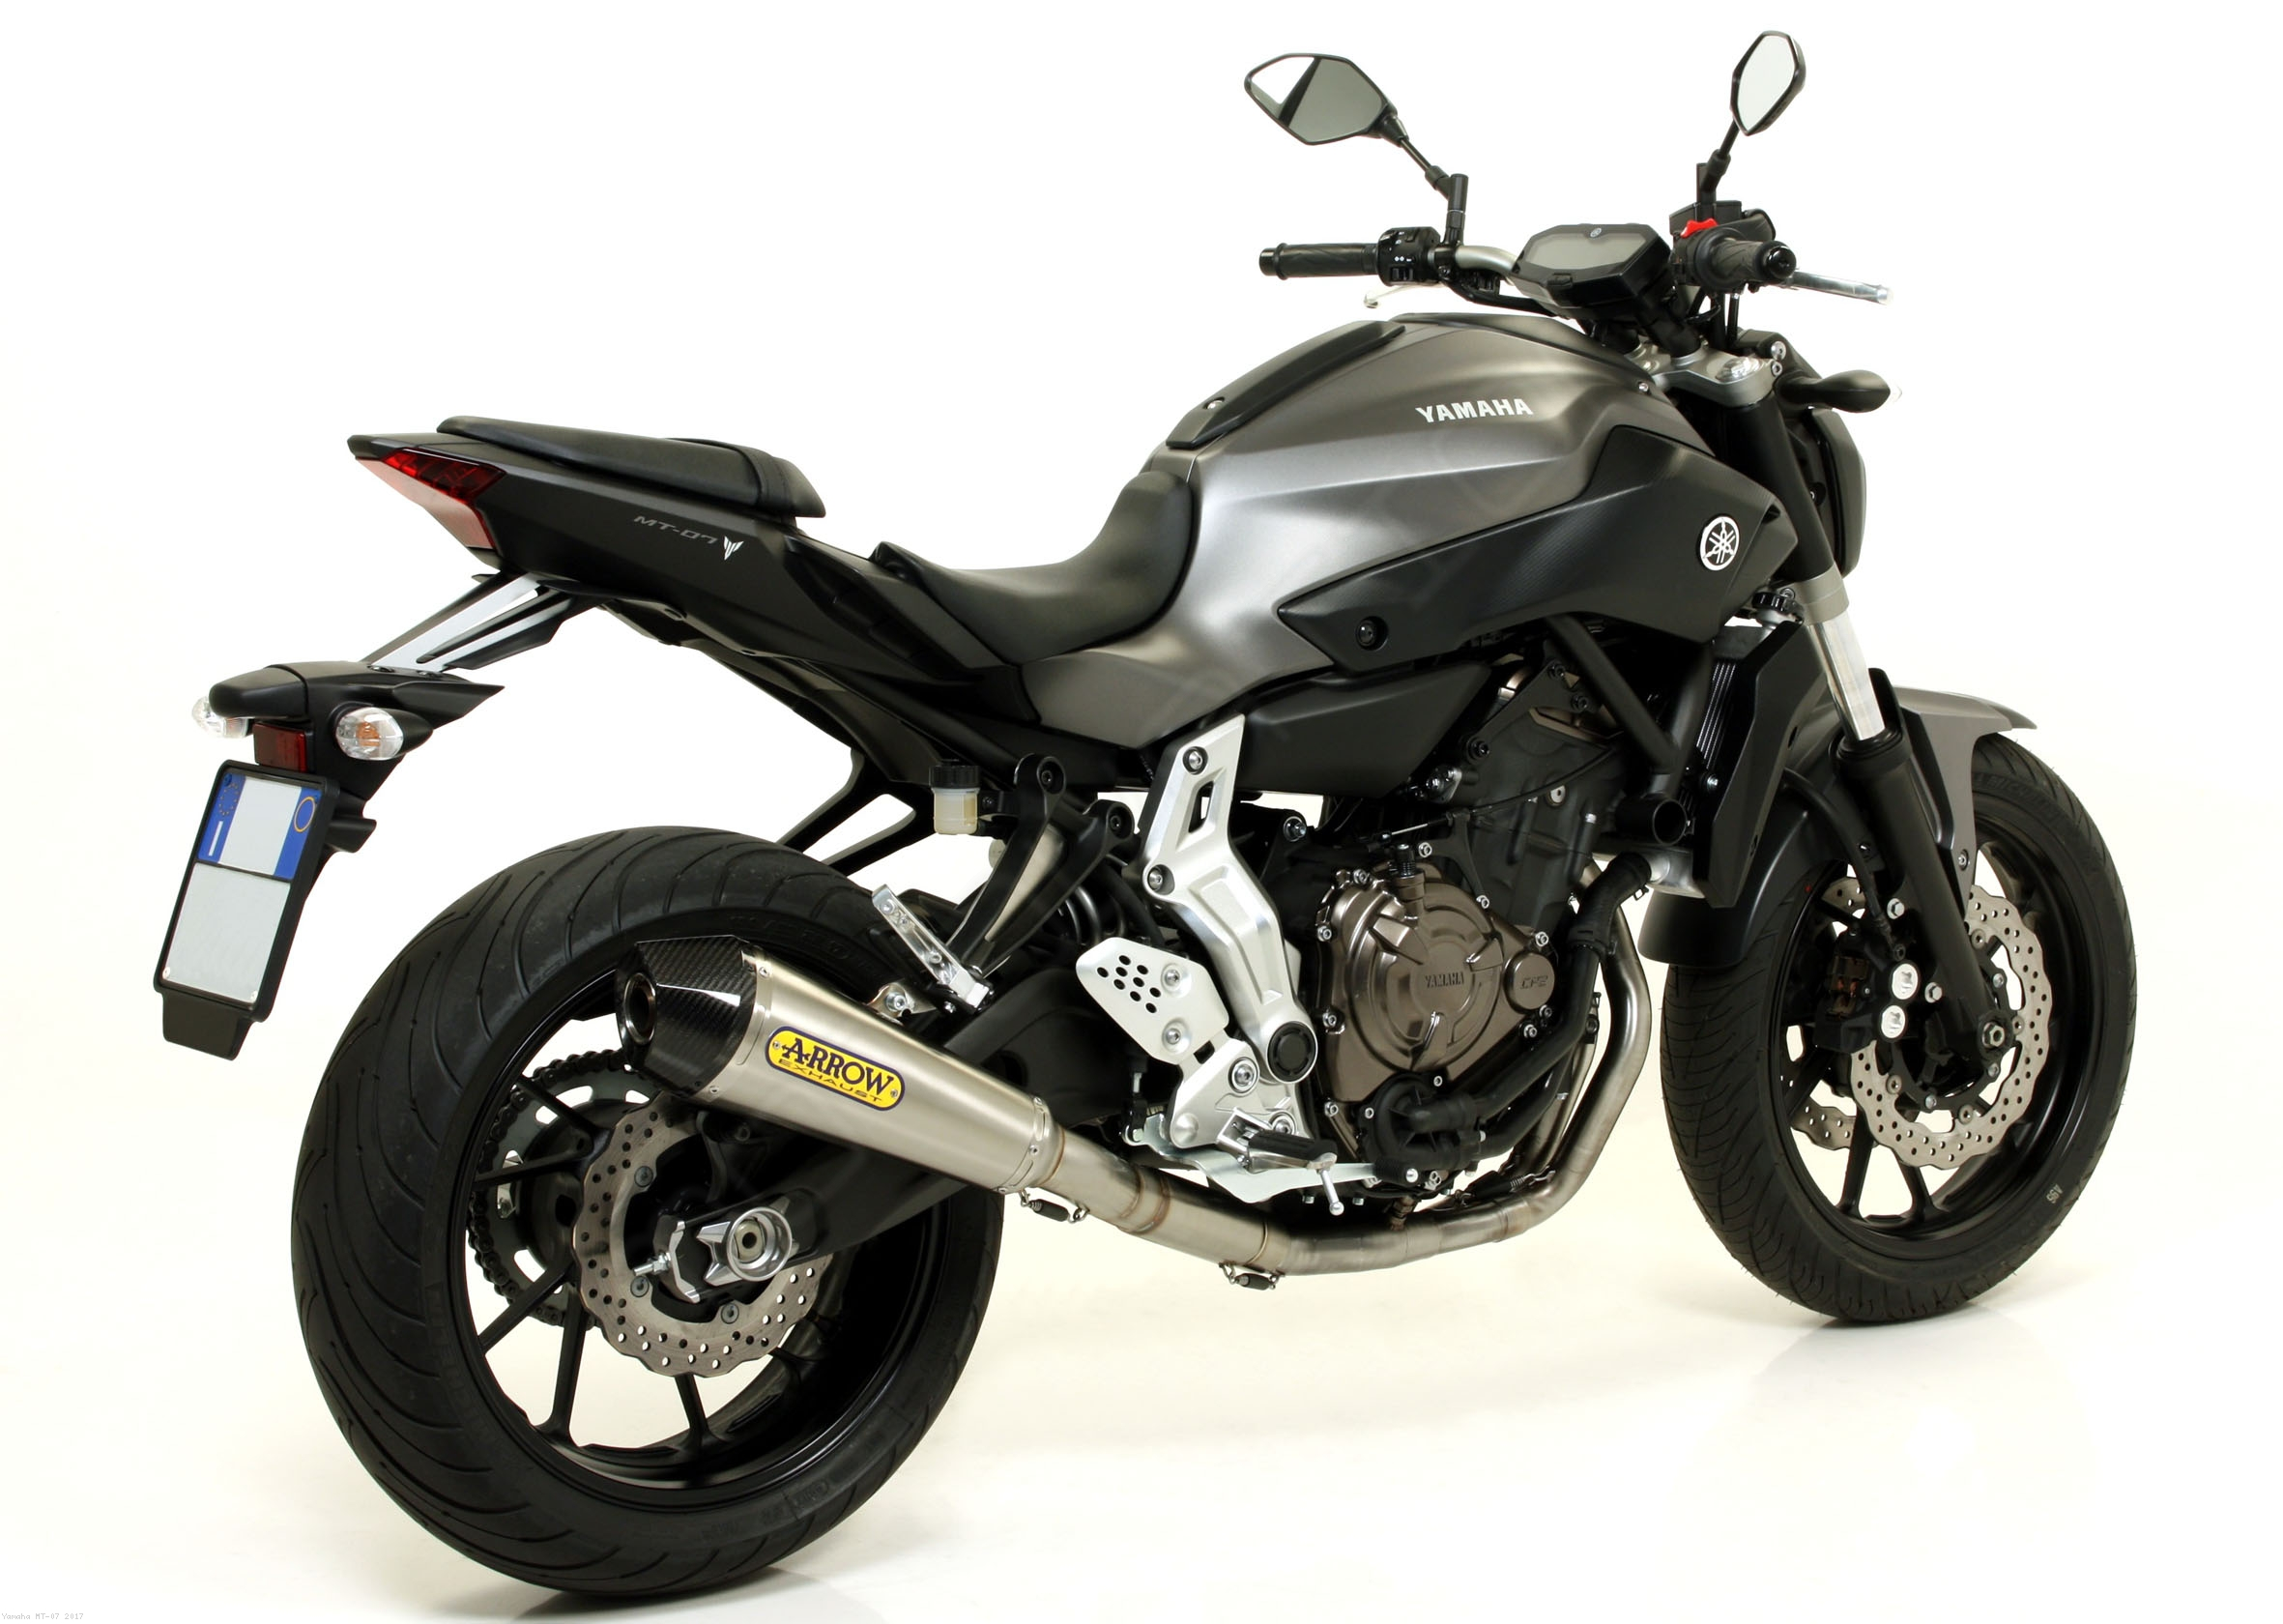 X kone exhaust system by arrow yamaha mt 07 2017 for Yamaha exhaust systems